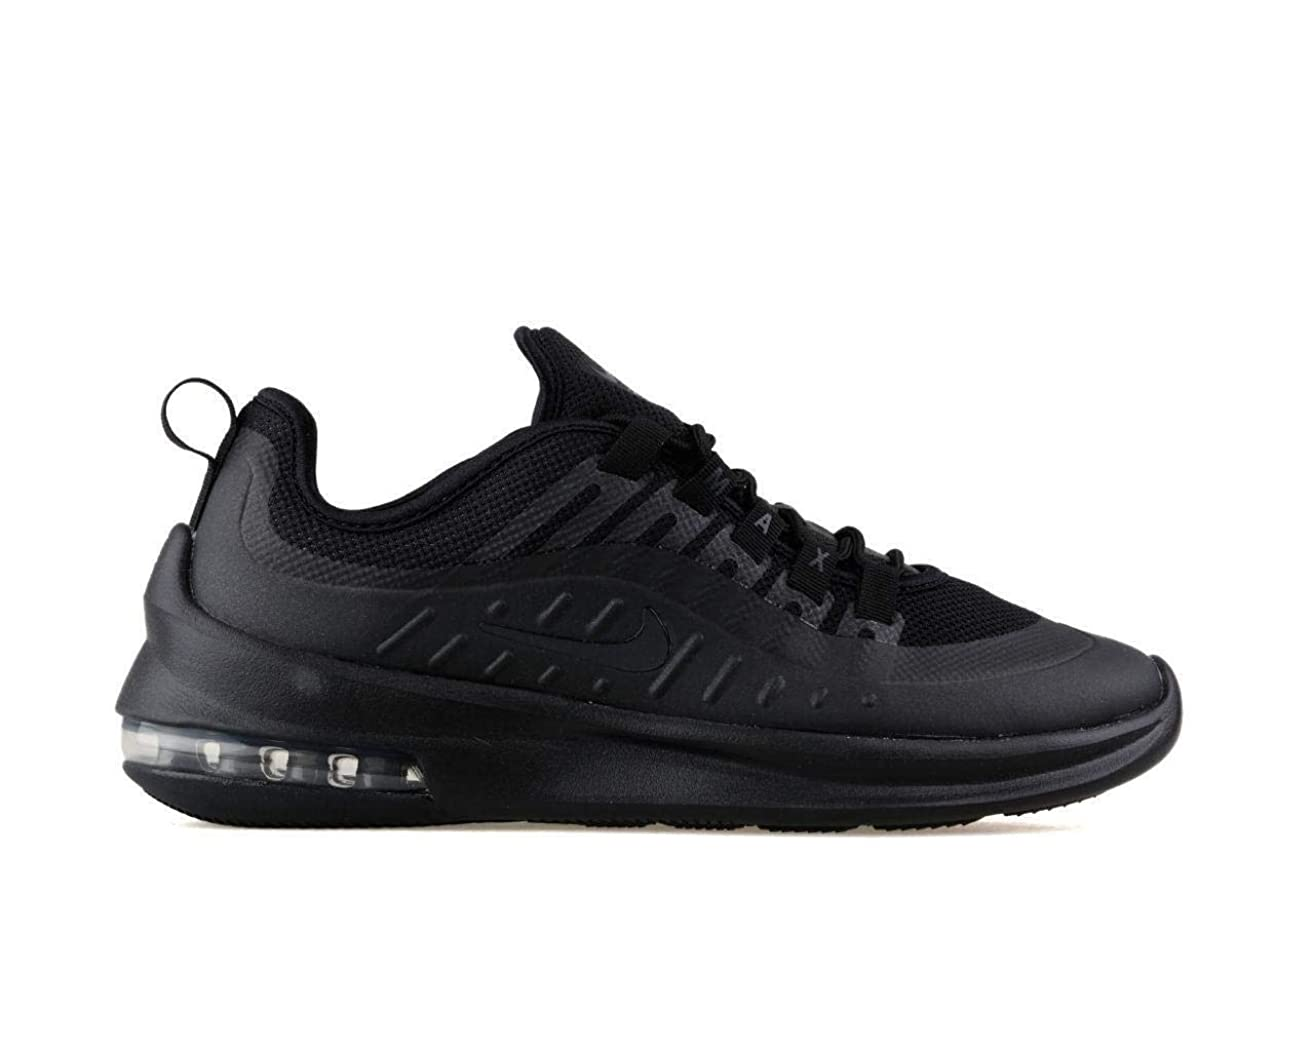 Nike Air Max Axis Mens Aa2146-006 Size 9 Black/Anthracite